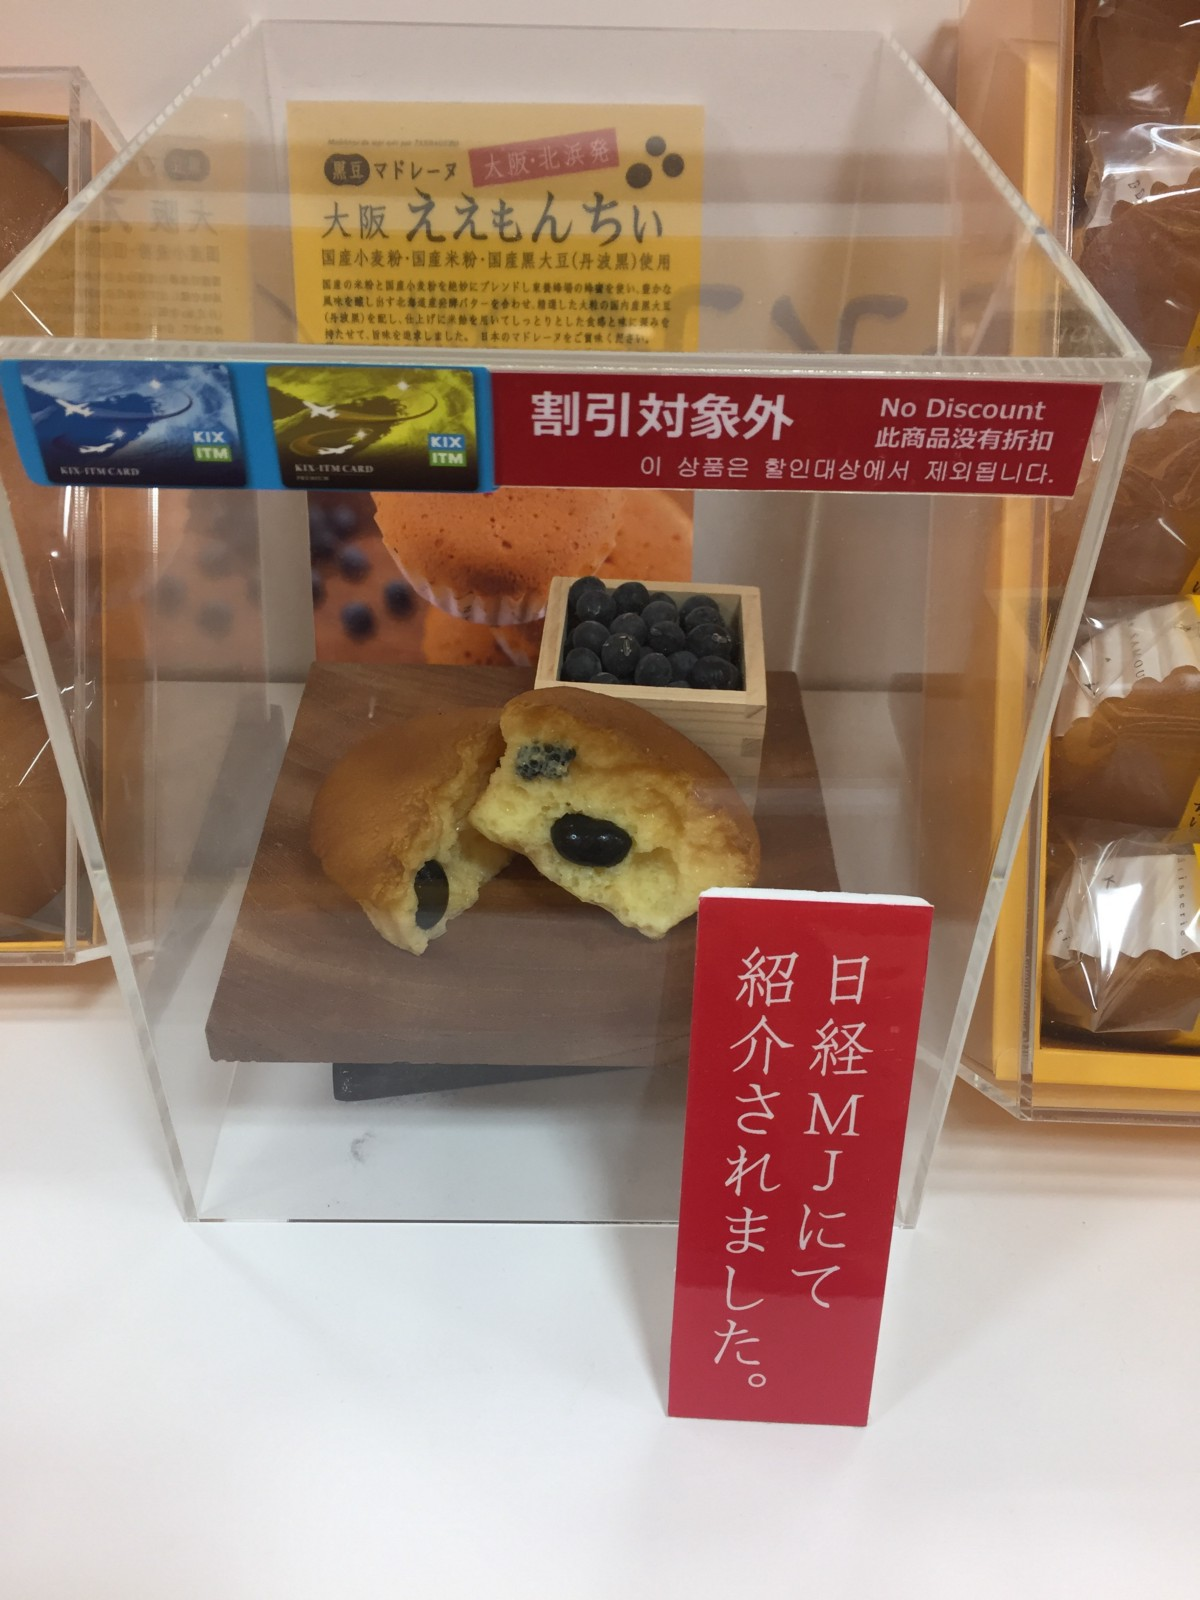 aa3f19ed2110 Eemonchi (ええもんちぃ) by Gokan (五感) is one of best selling souvenirs from Osaka.  The fluffy madeleines made with rich butter and Tamba s black beans.